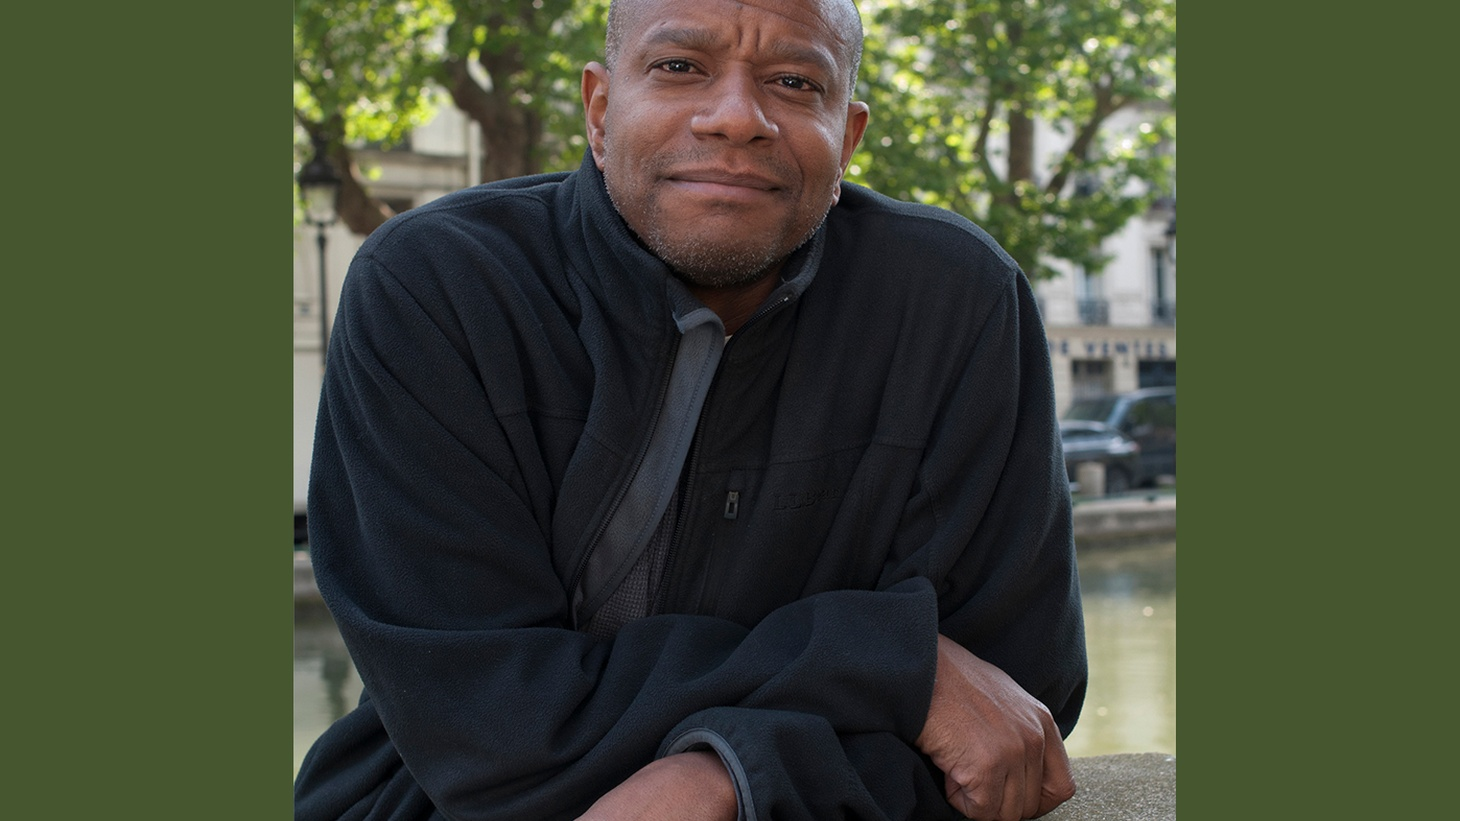 Los Angeles-born writer Paul Beatty is the first American to win the Man Booker Prize for Fiction. He won for The Sellout, a satire based in south LA. It's laced with cutting insights on race, slavery, Oreo cookies and segregation.